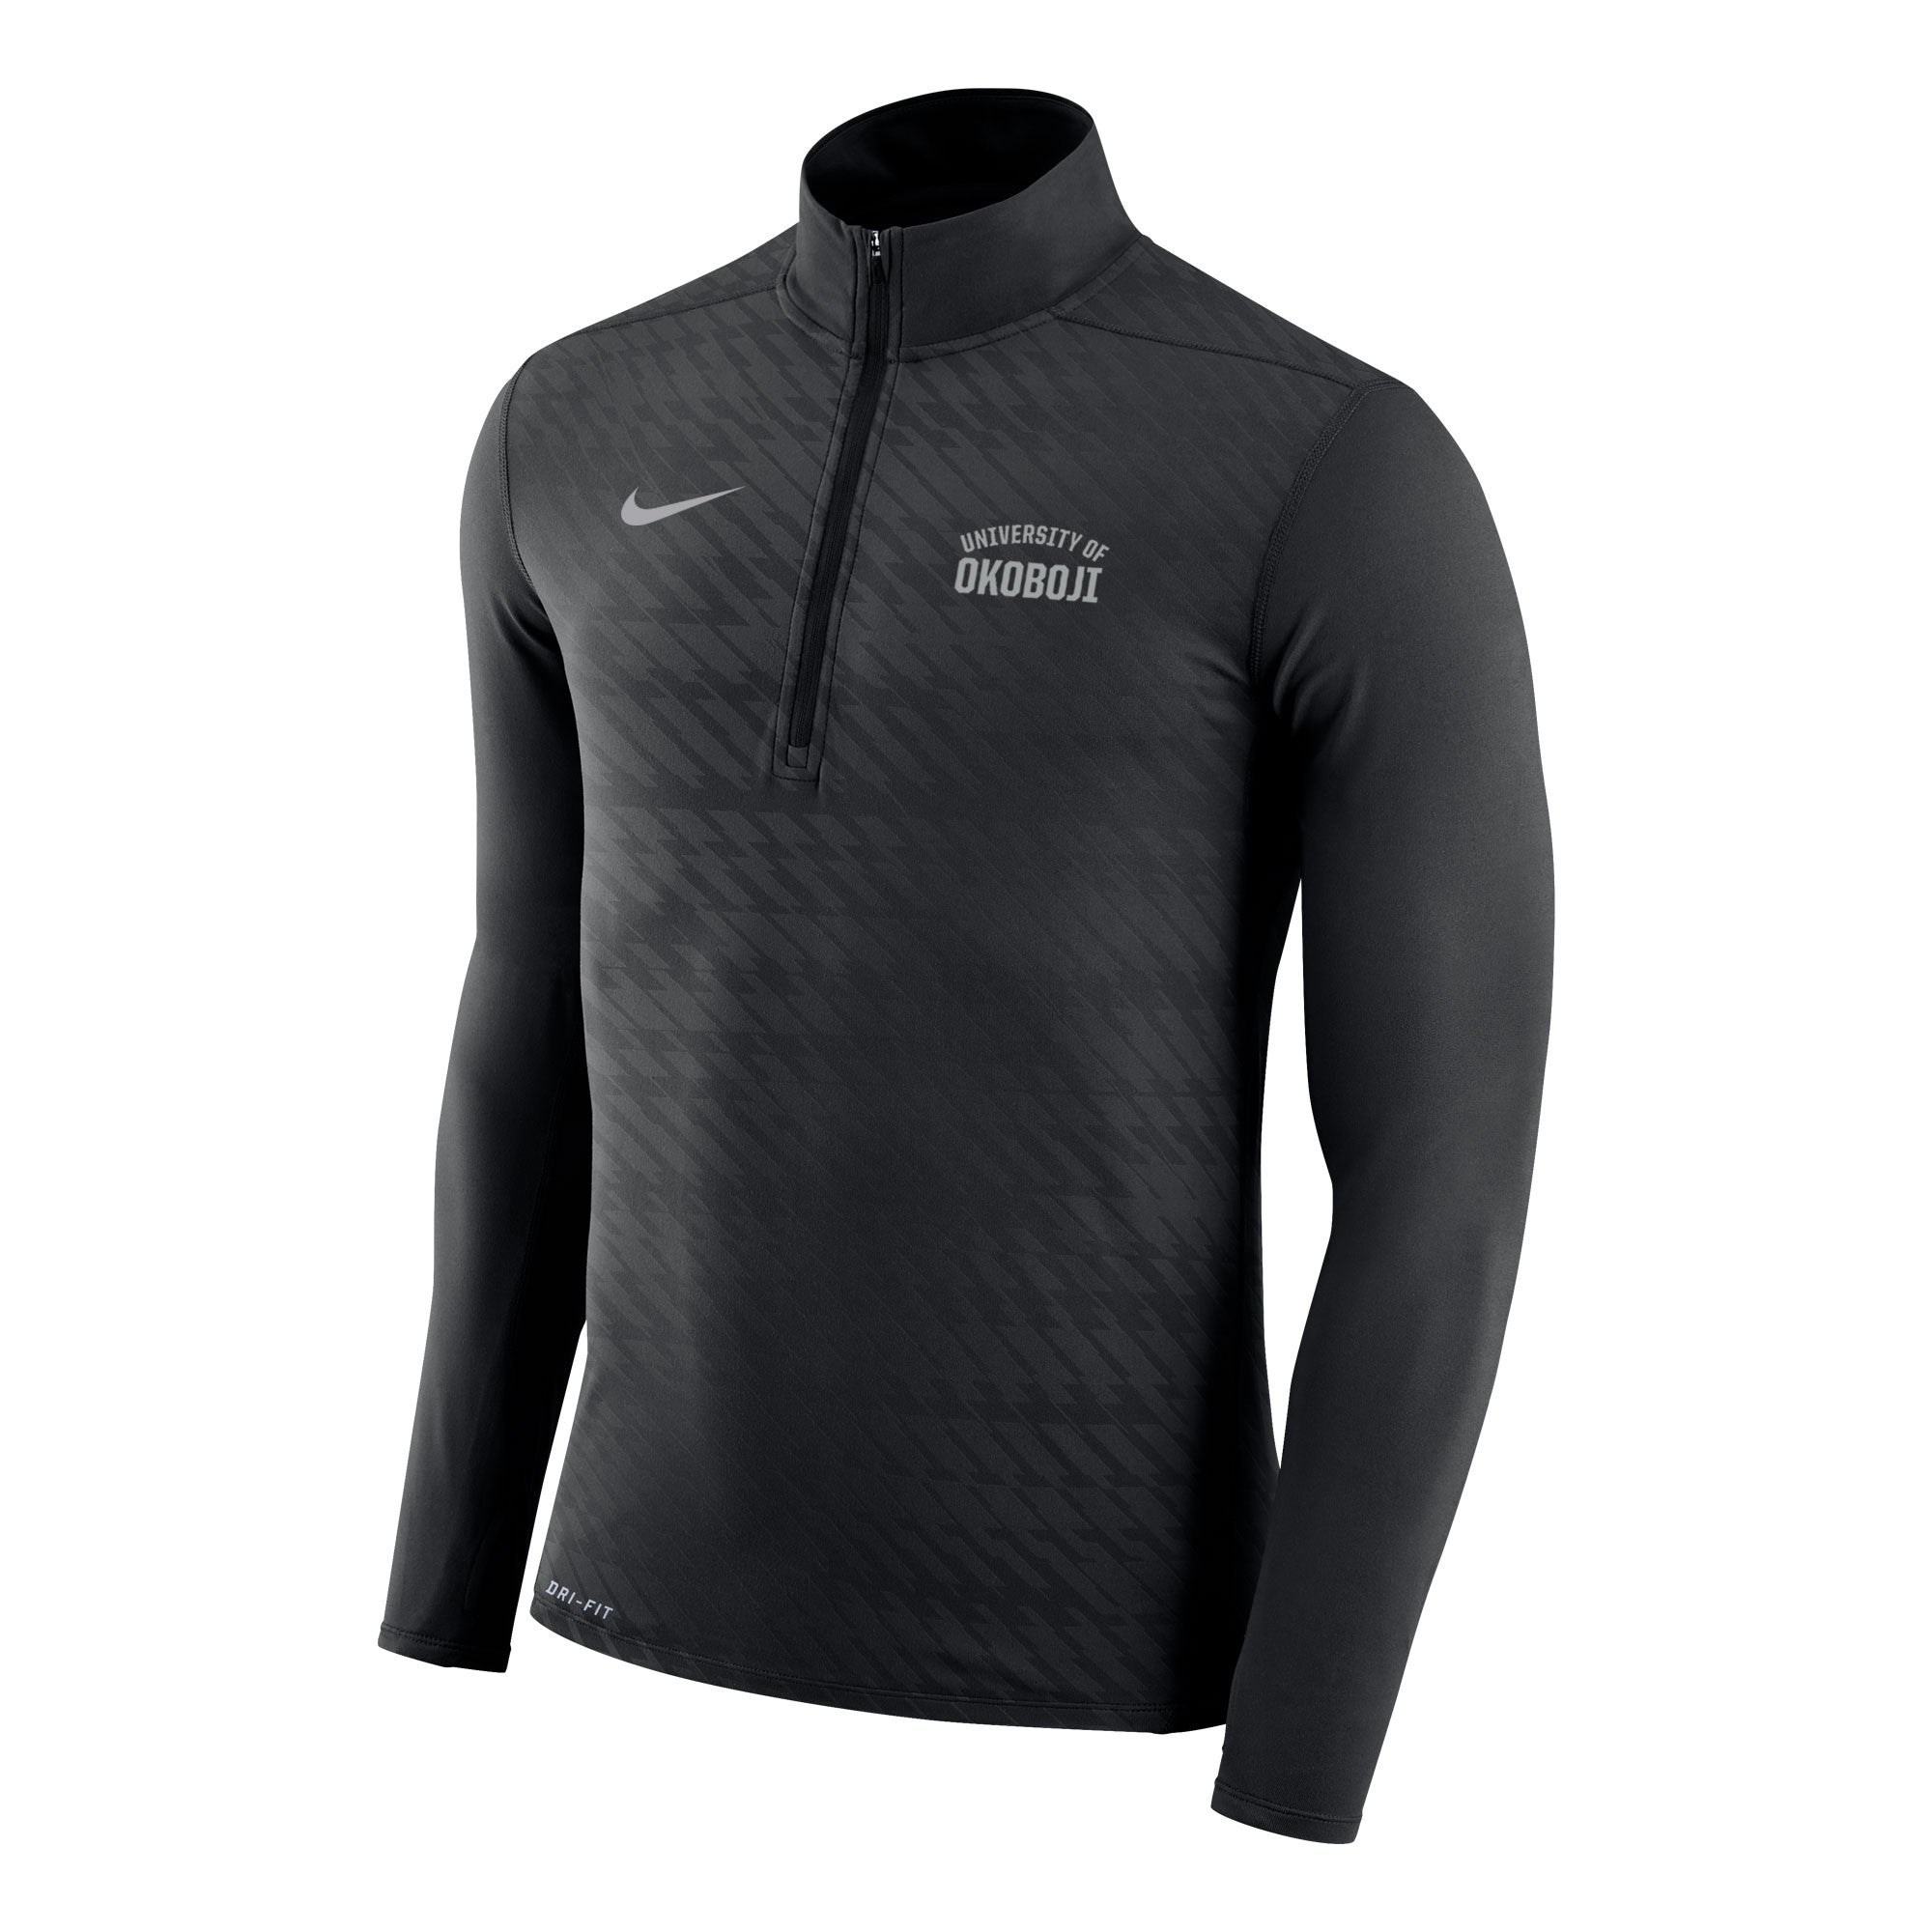 Men's Embossed Element 1/4 Zip Top - Black